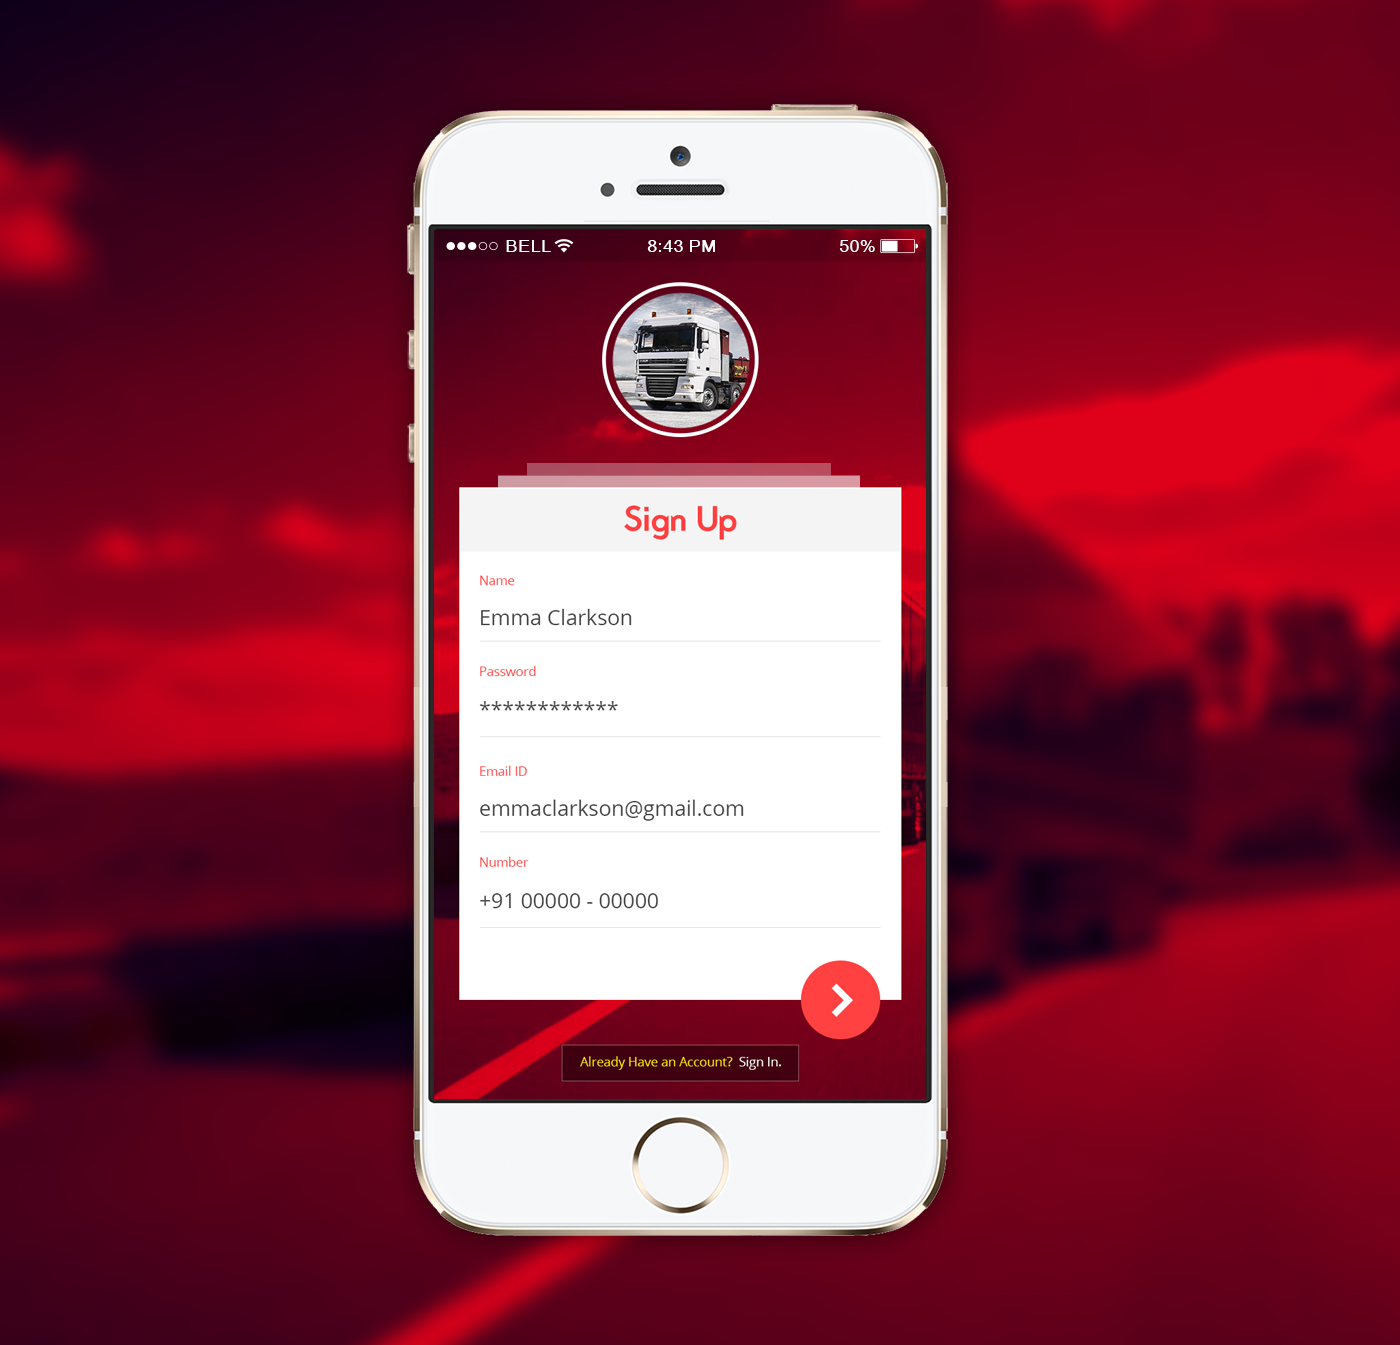 Truck App Sign Up UI